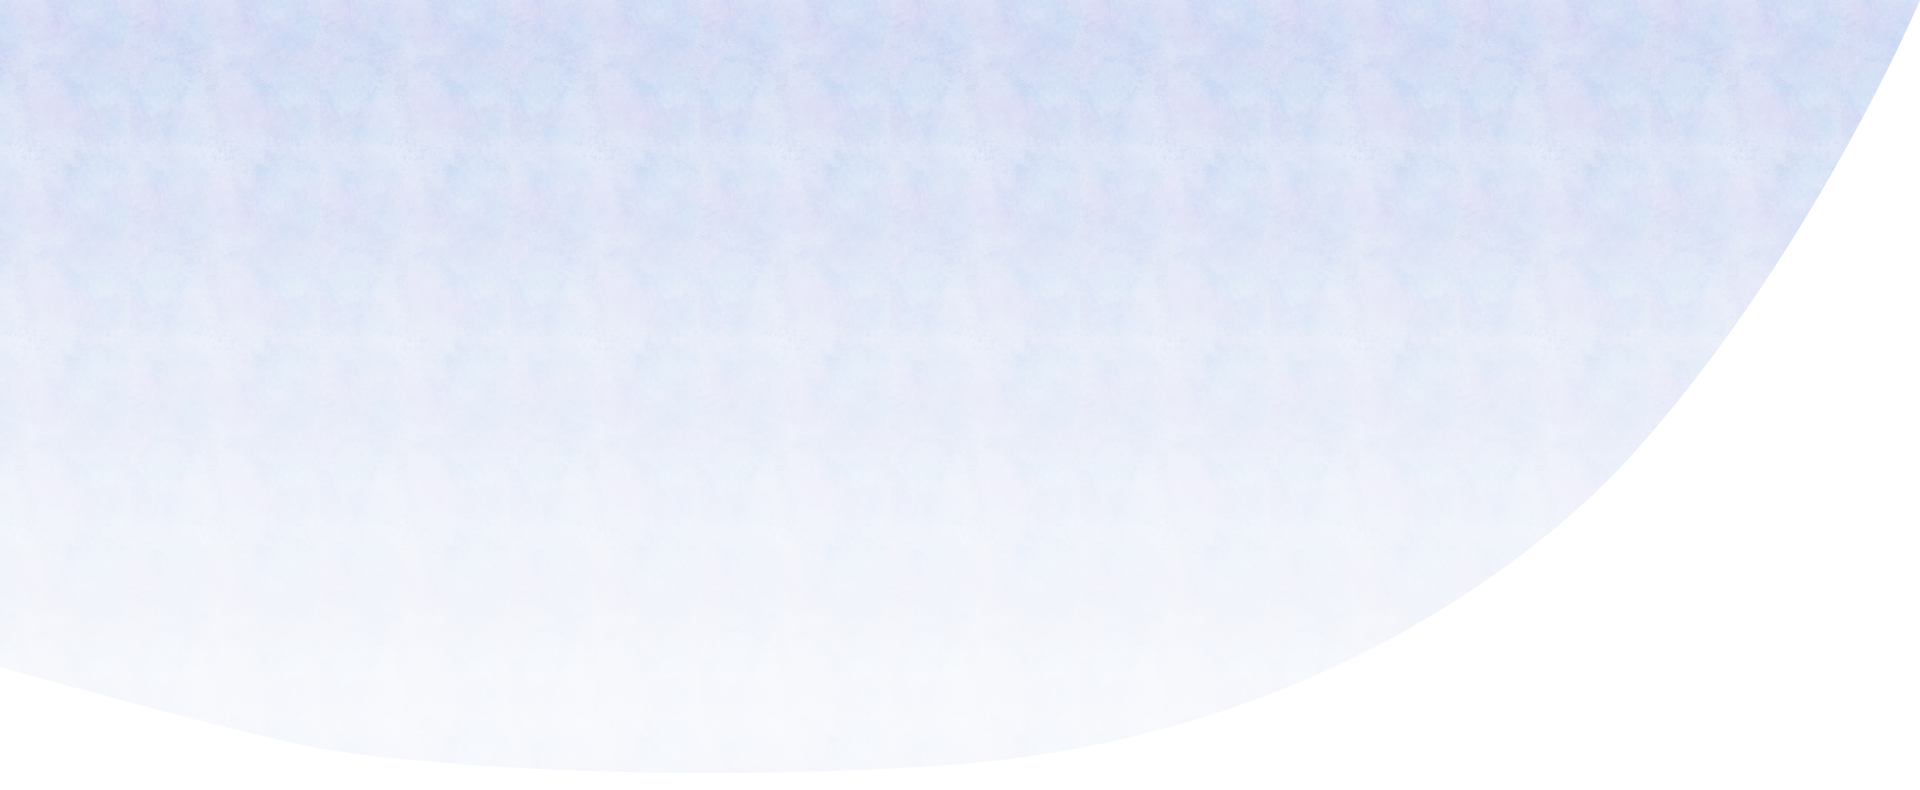 00HOME_back1.png